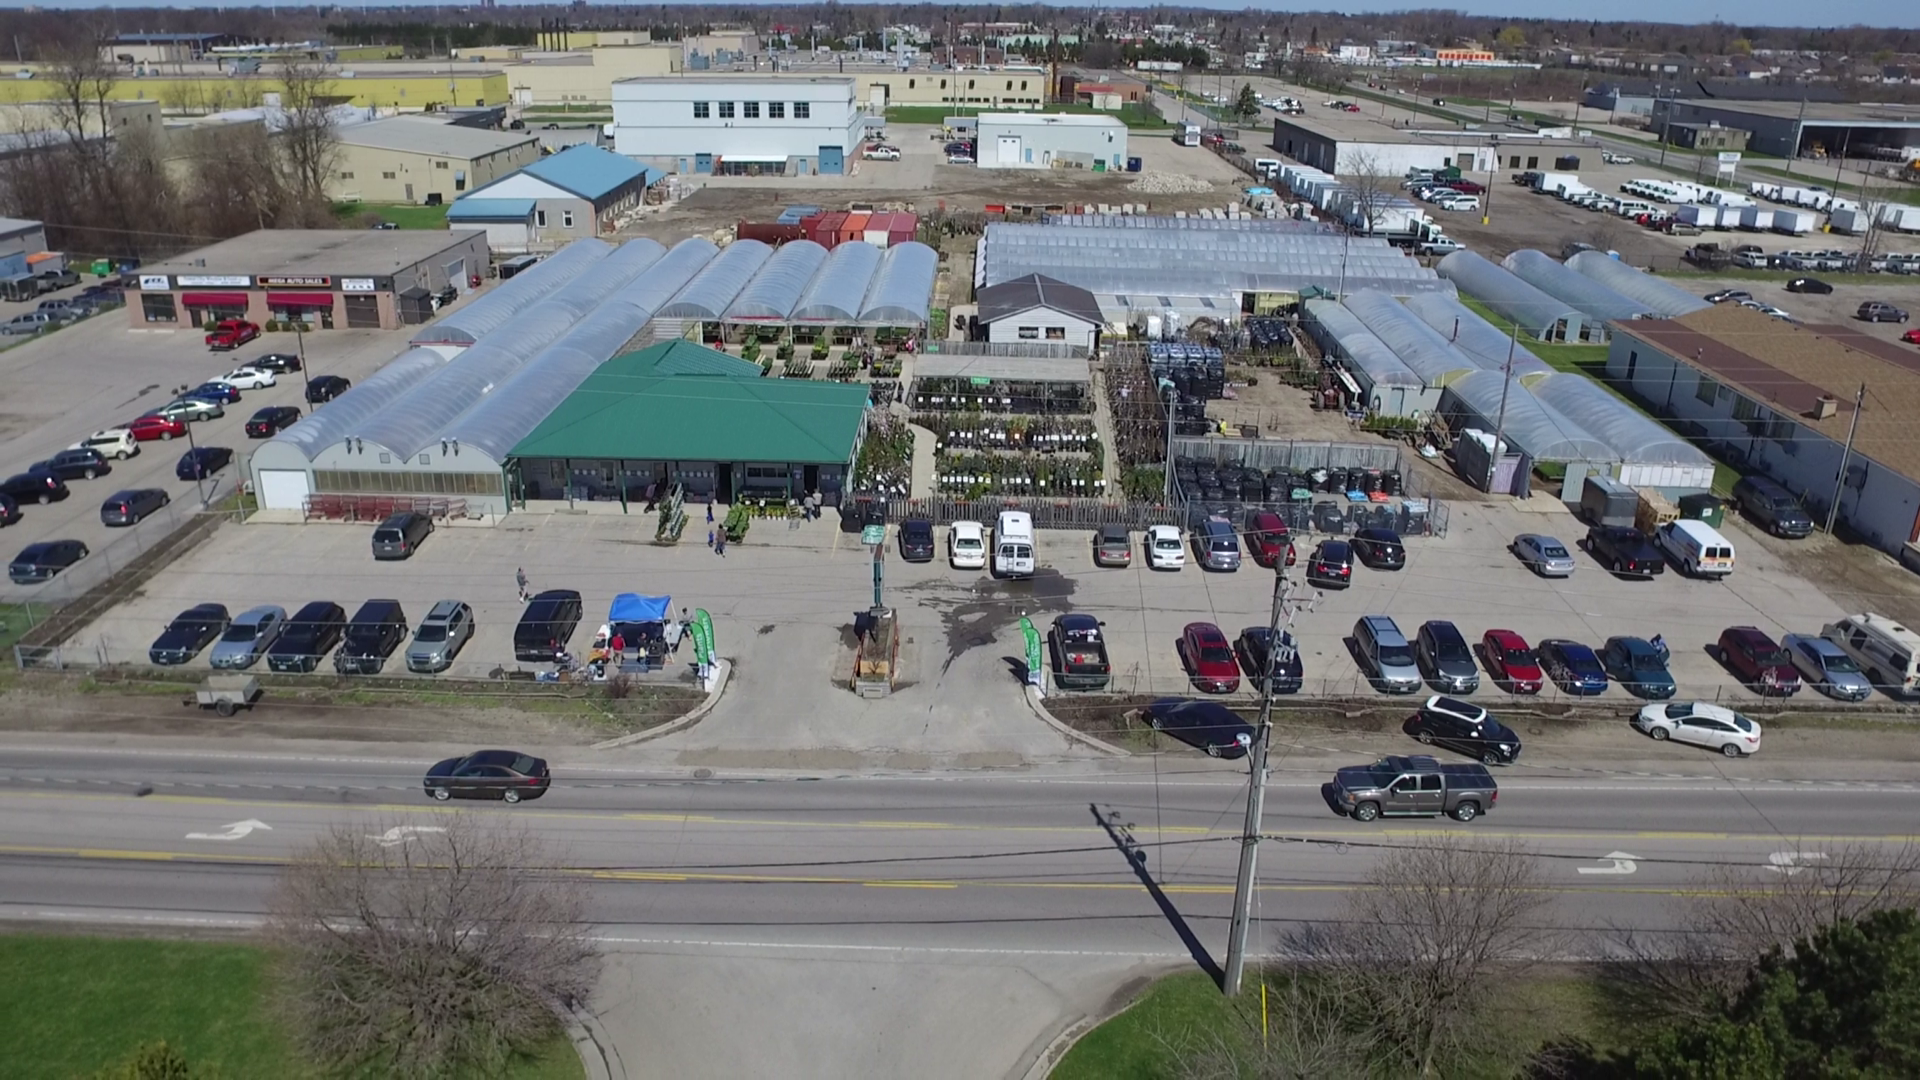 Garden Centre: Garden Centre & Nursery In London, Ontario